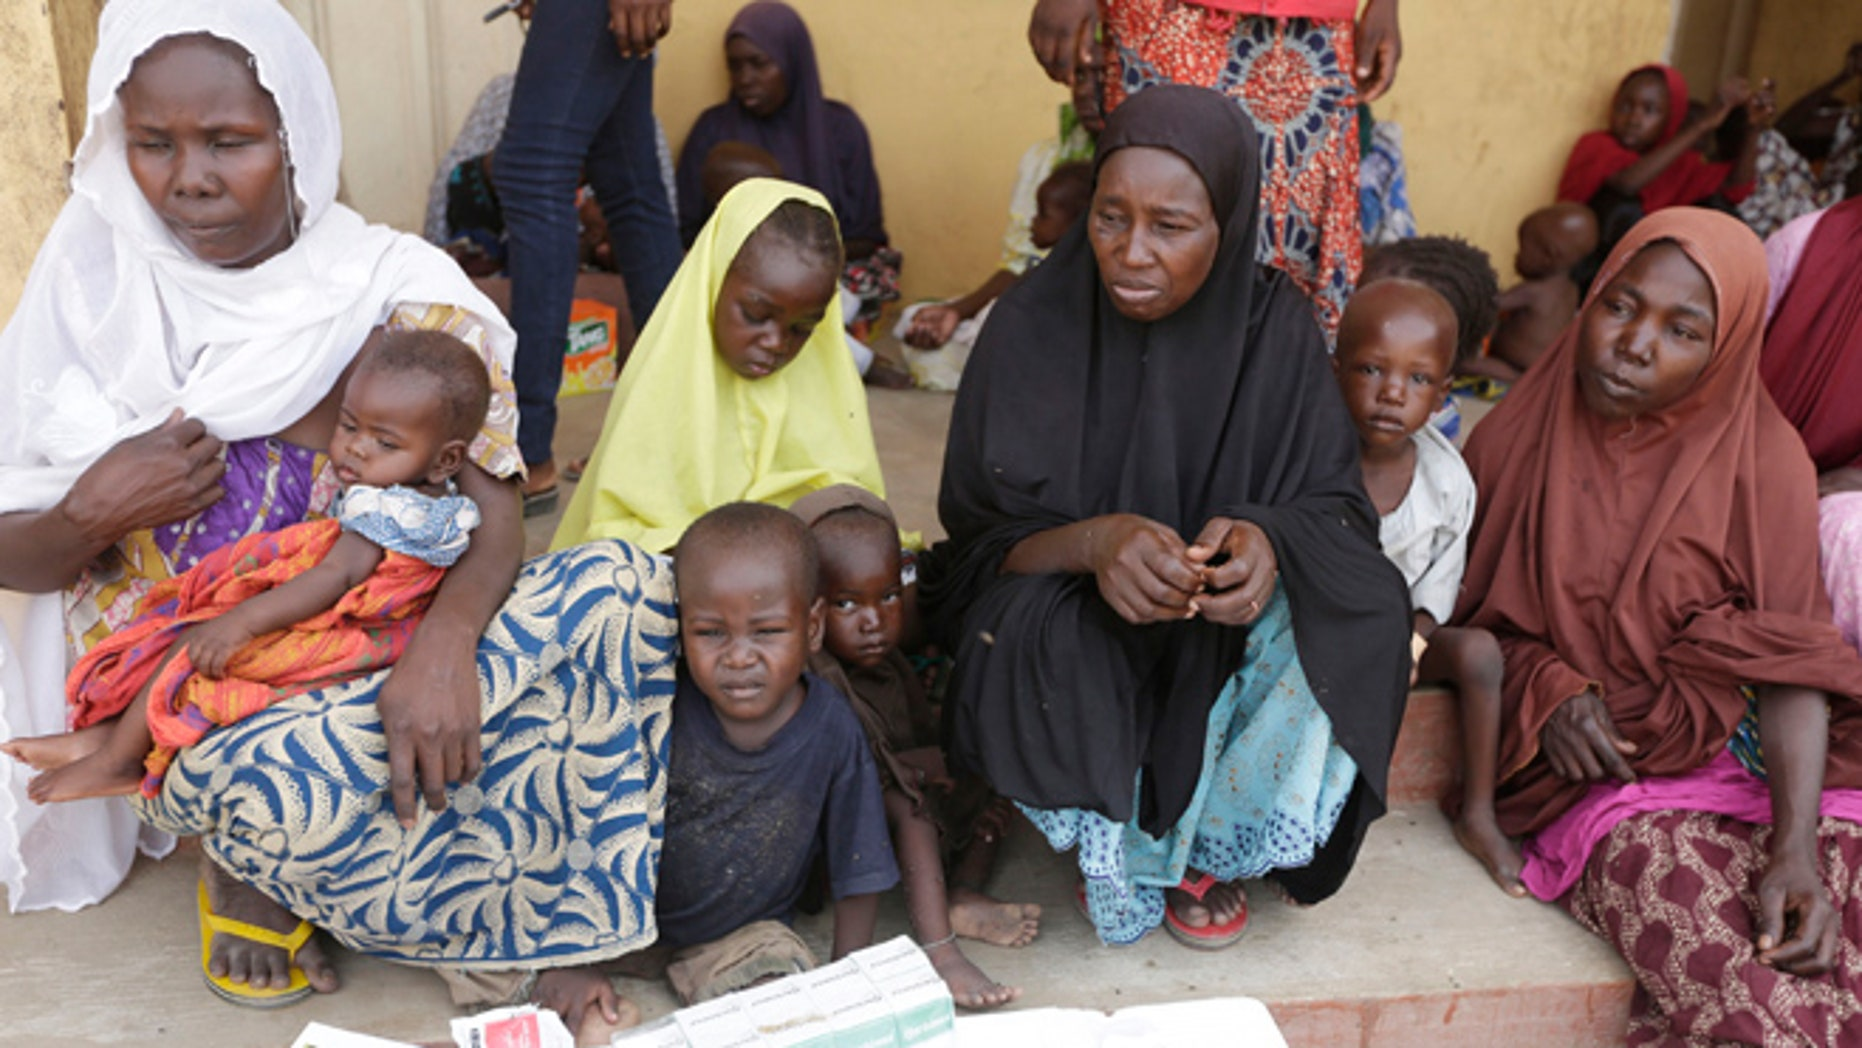 Women and children rescued by Nigerian soldiers from Boko Haram extremists at Sambisa Forest wait for treatment at a refugee camp in Yola, Nigeria. Boko Haram fighters stoned captives to death, some girls and women were crushed by an armored car and three died when a land mine exploded as they walked to freedom.  (AP Photo/Sunday Alamba)